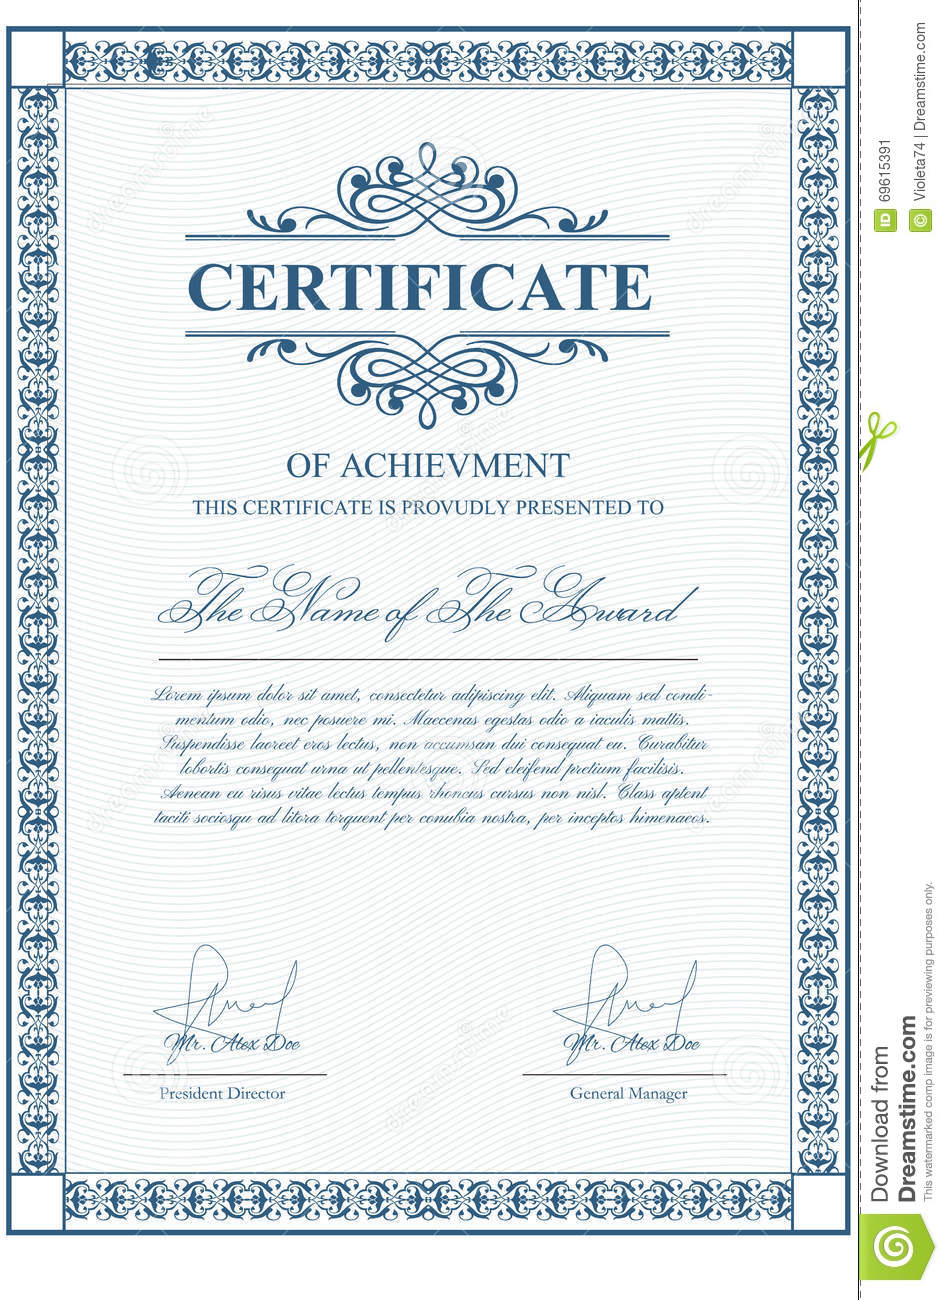 Certificate Template With Guilloche Elements. Stock Vector Throughout Validation Certificate Template